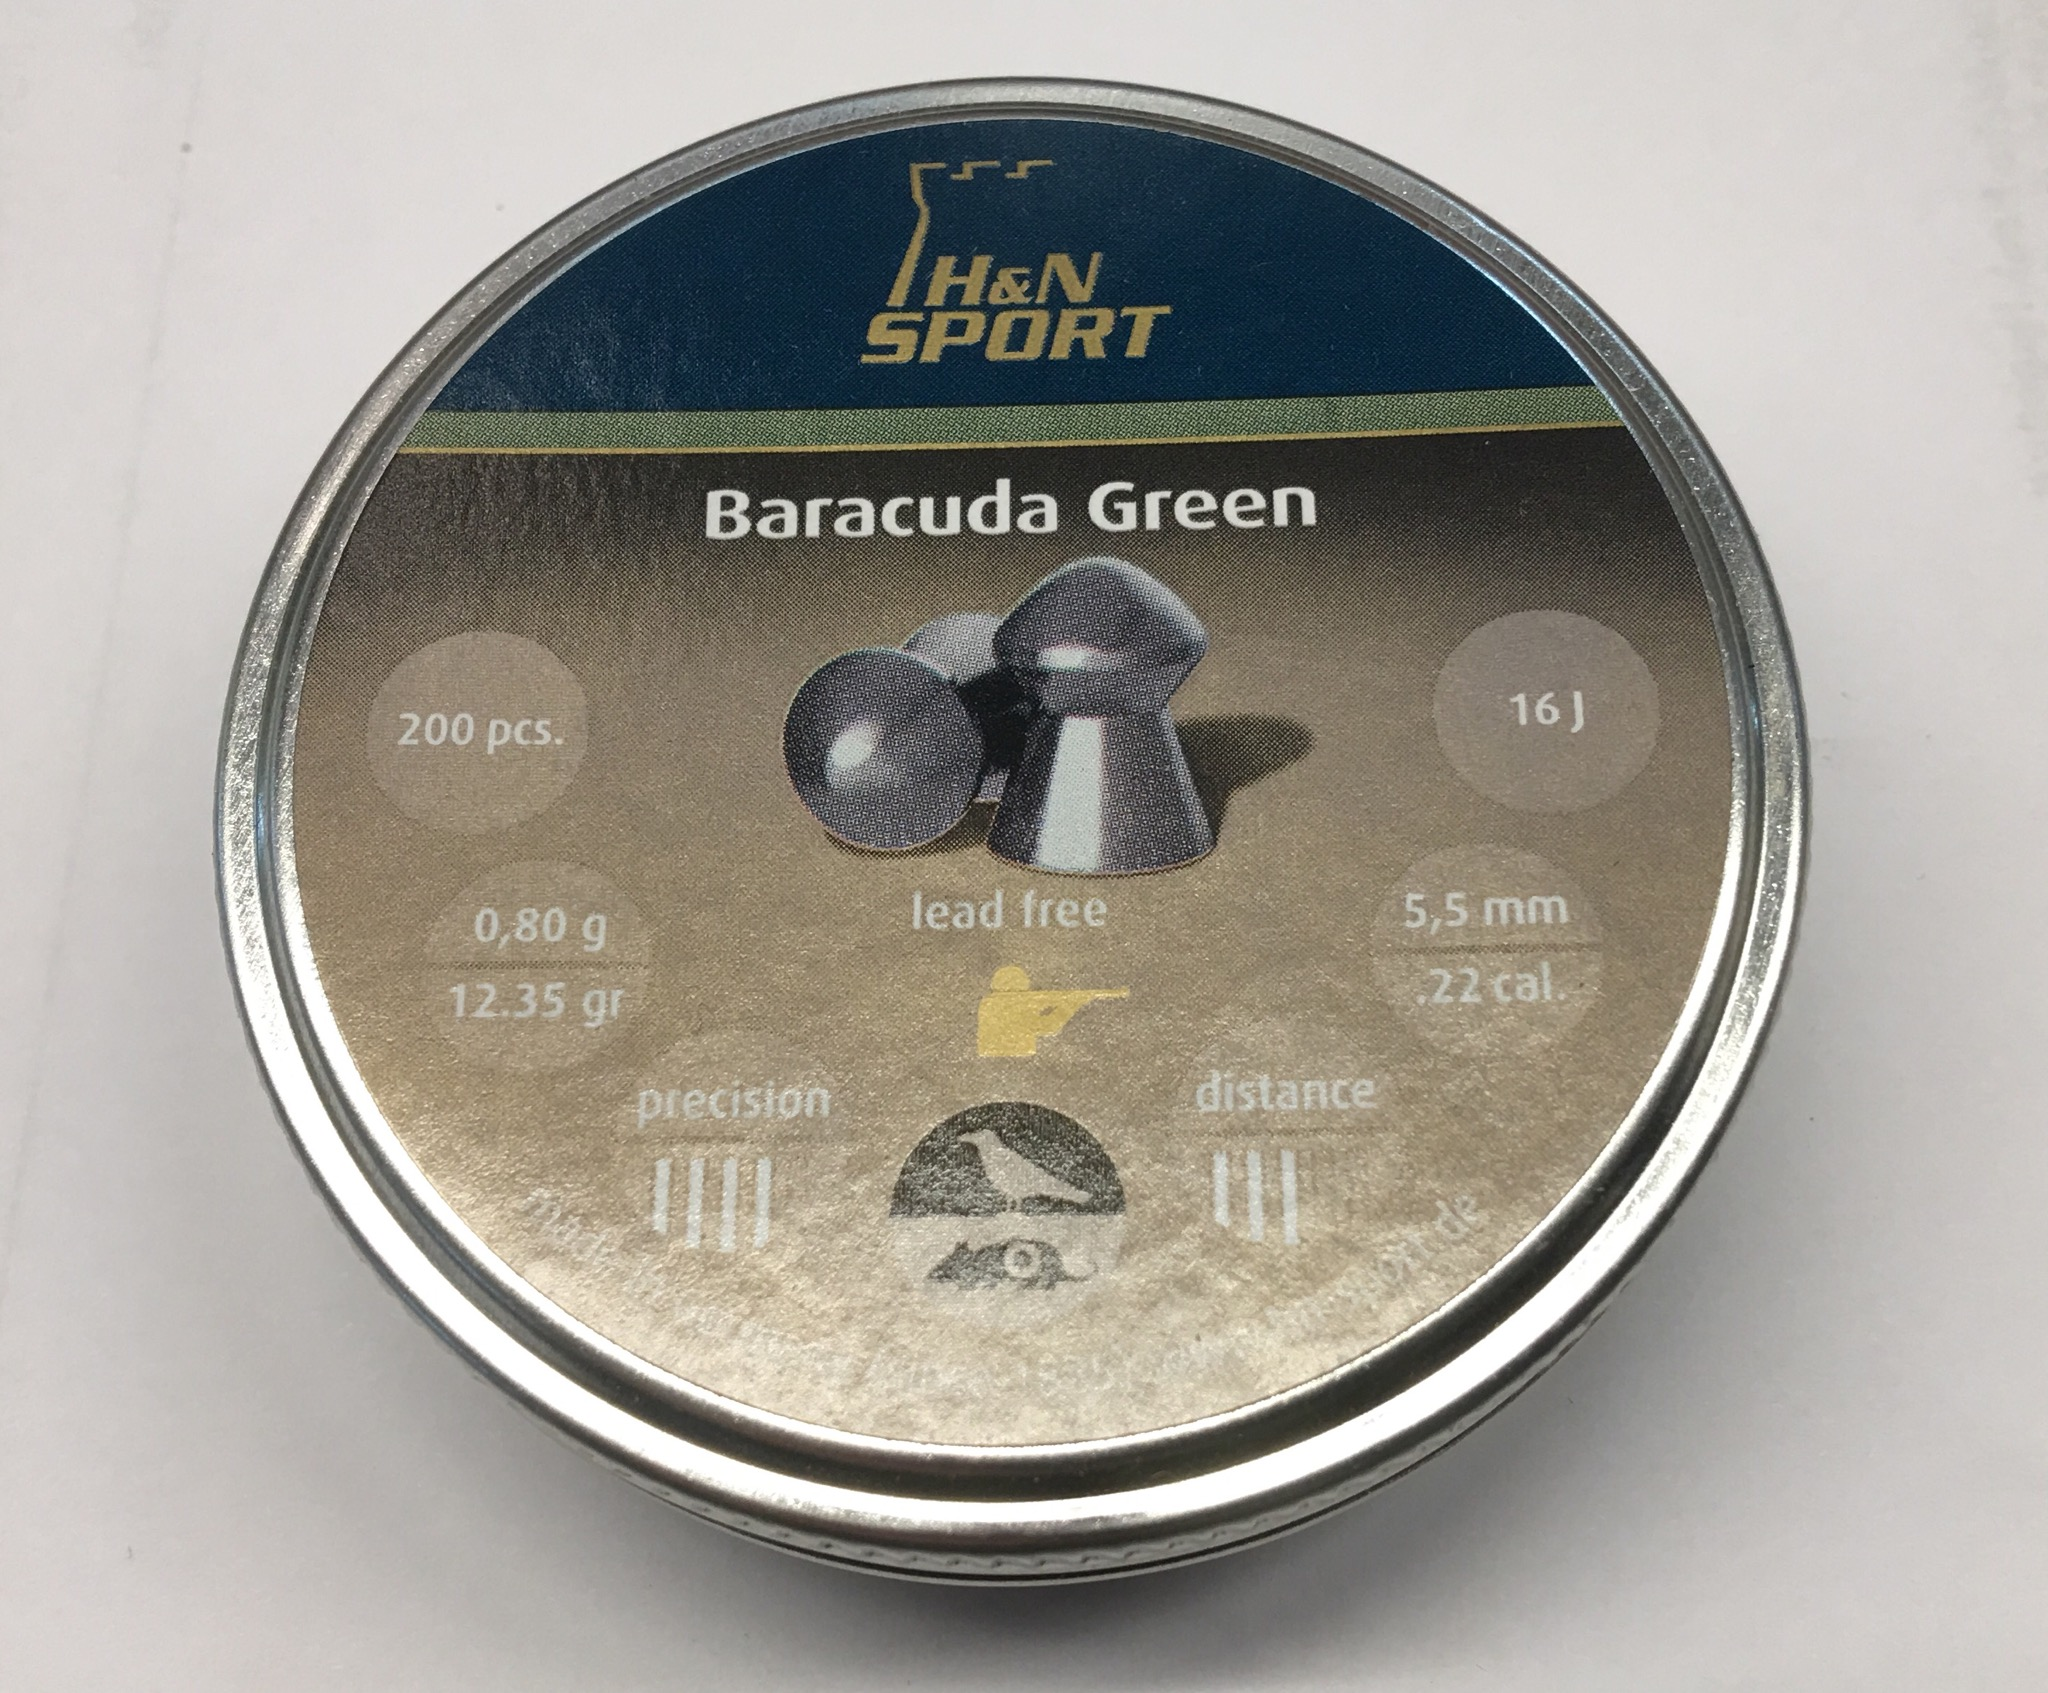 H&N Baracuda Green 5,5 mm